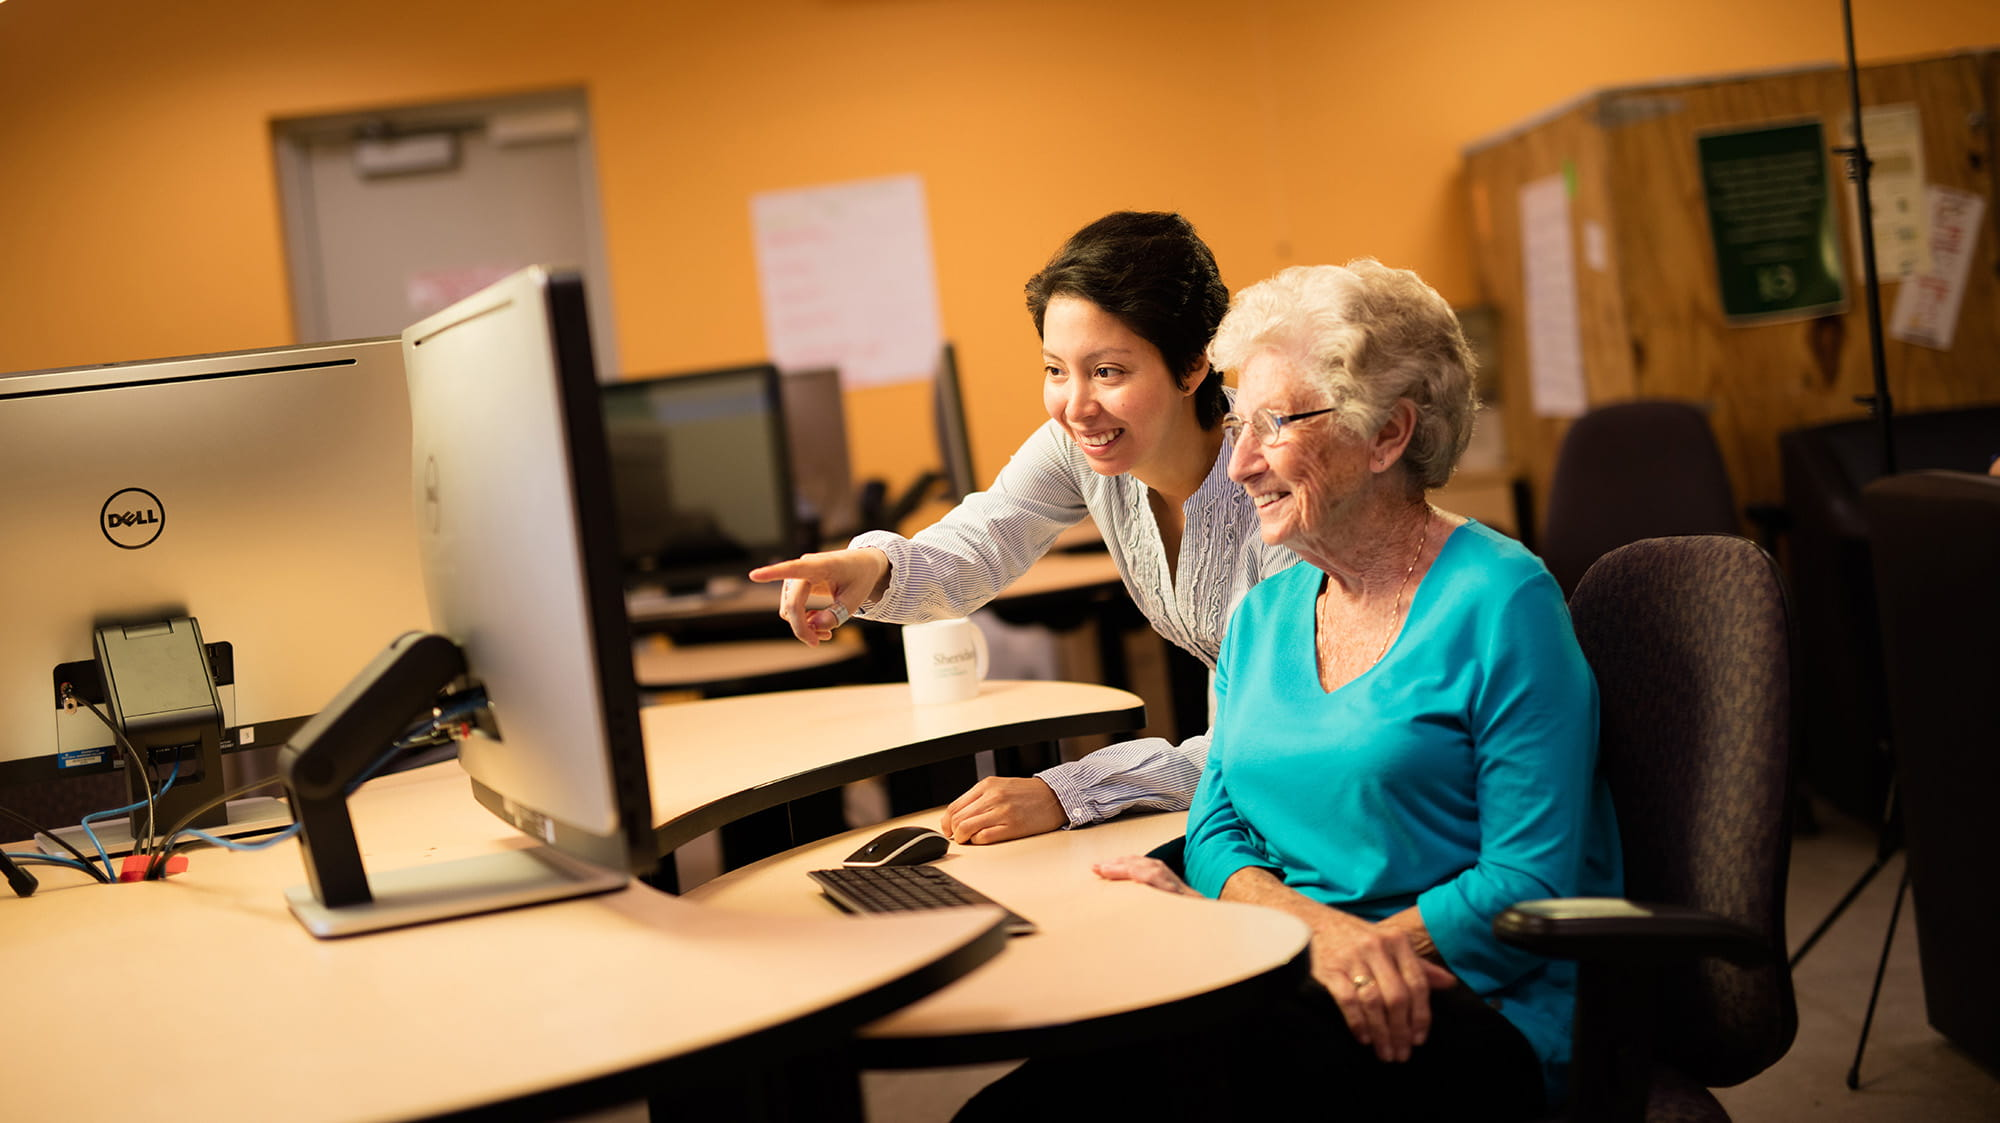 A student helping an older woman work on a computer